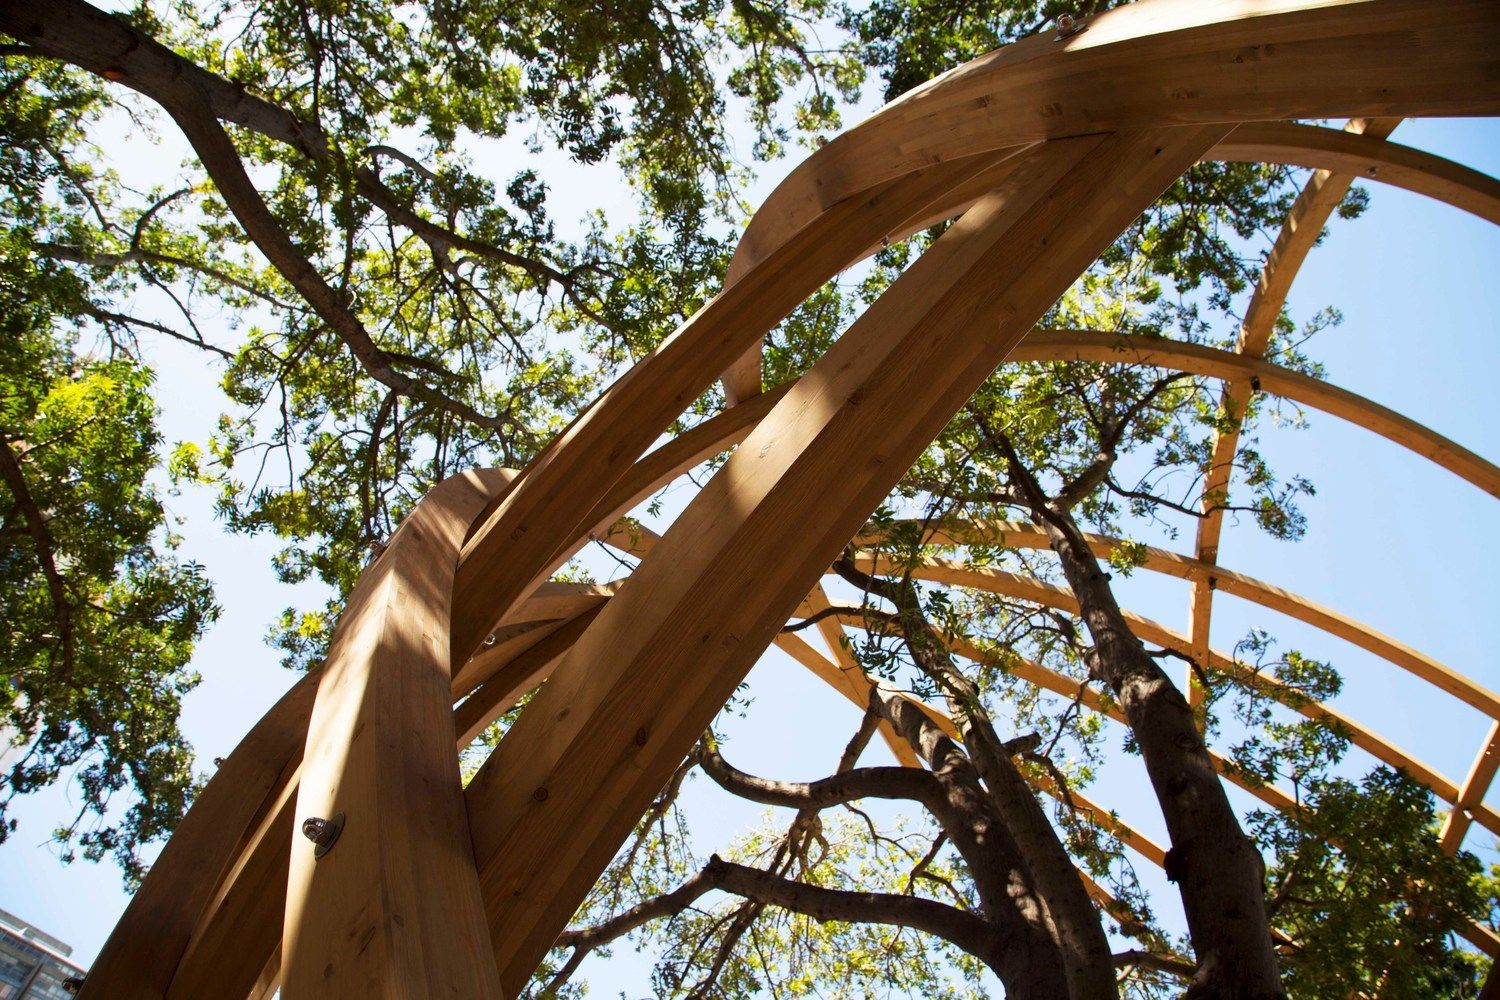 Gallery of Snøhetta and Local Studio Unveil Wooden Archway